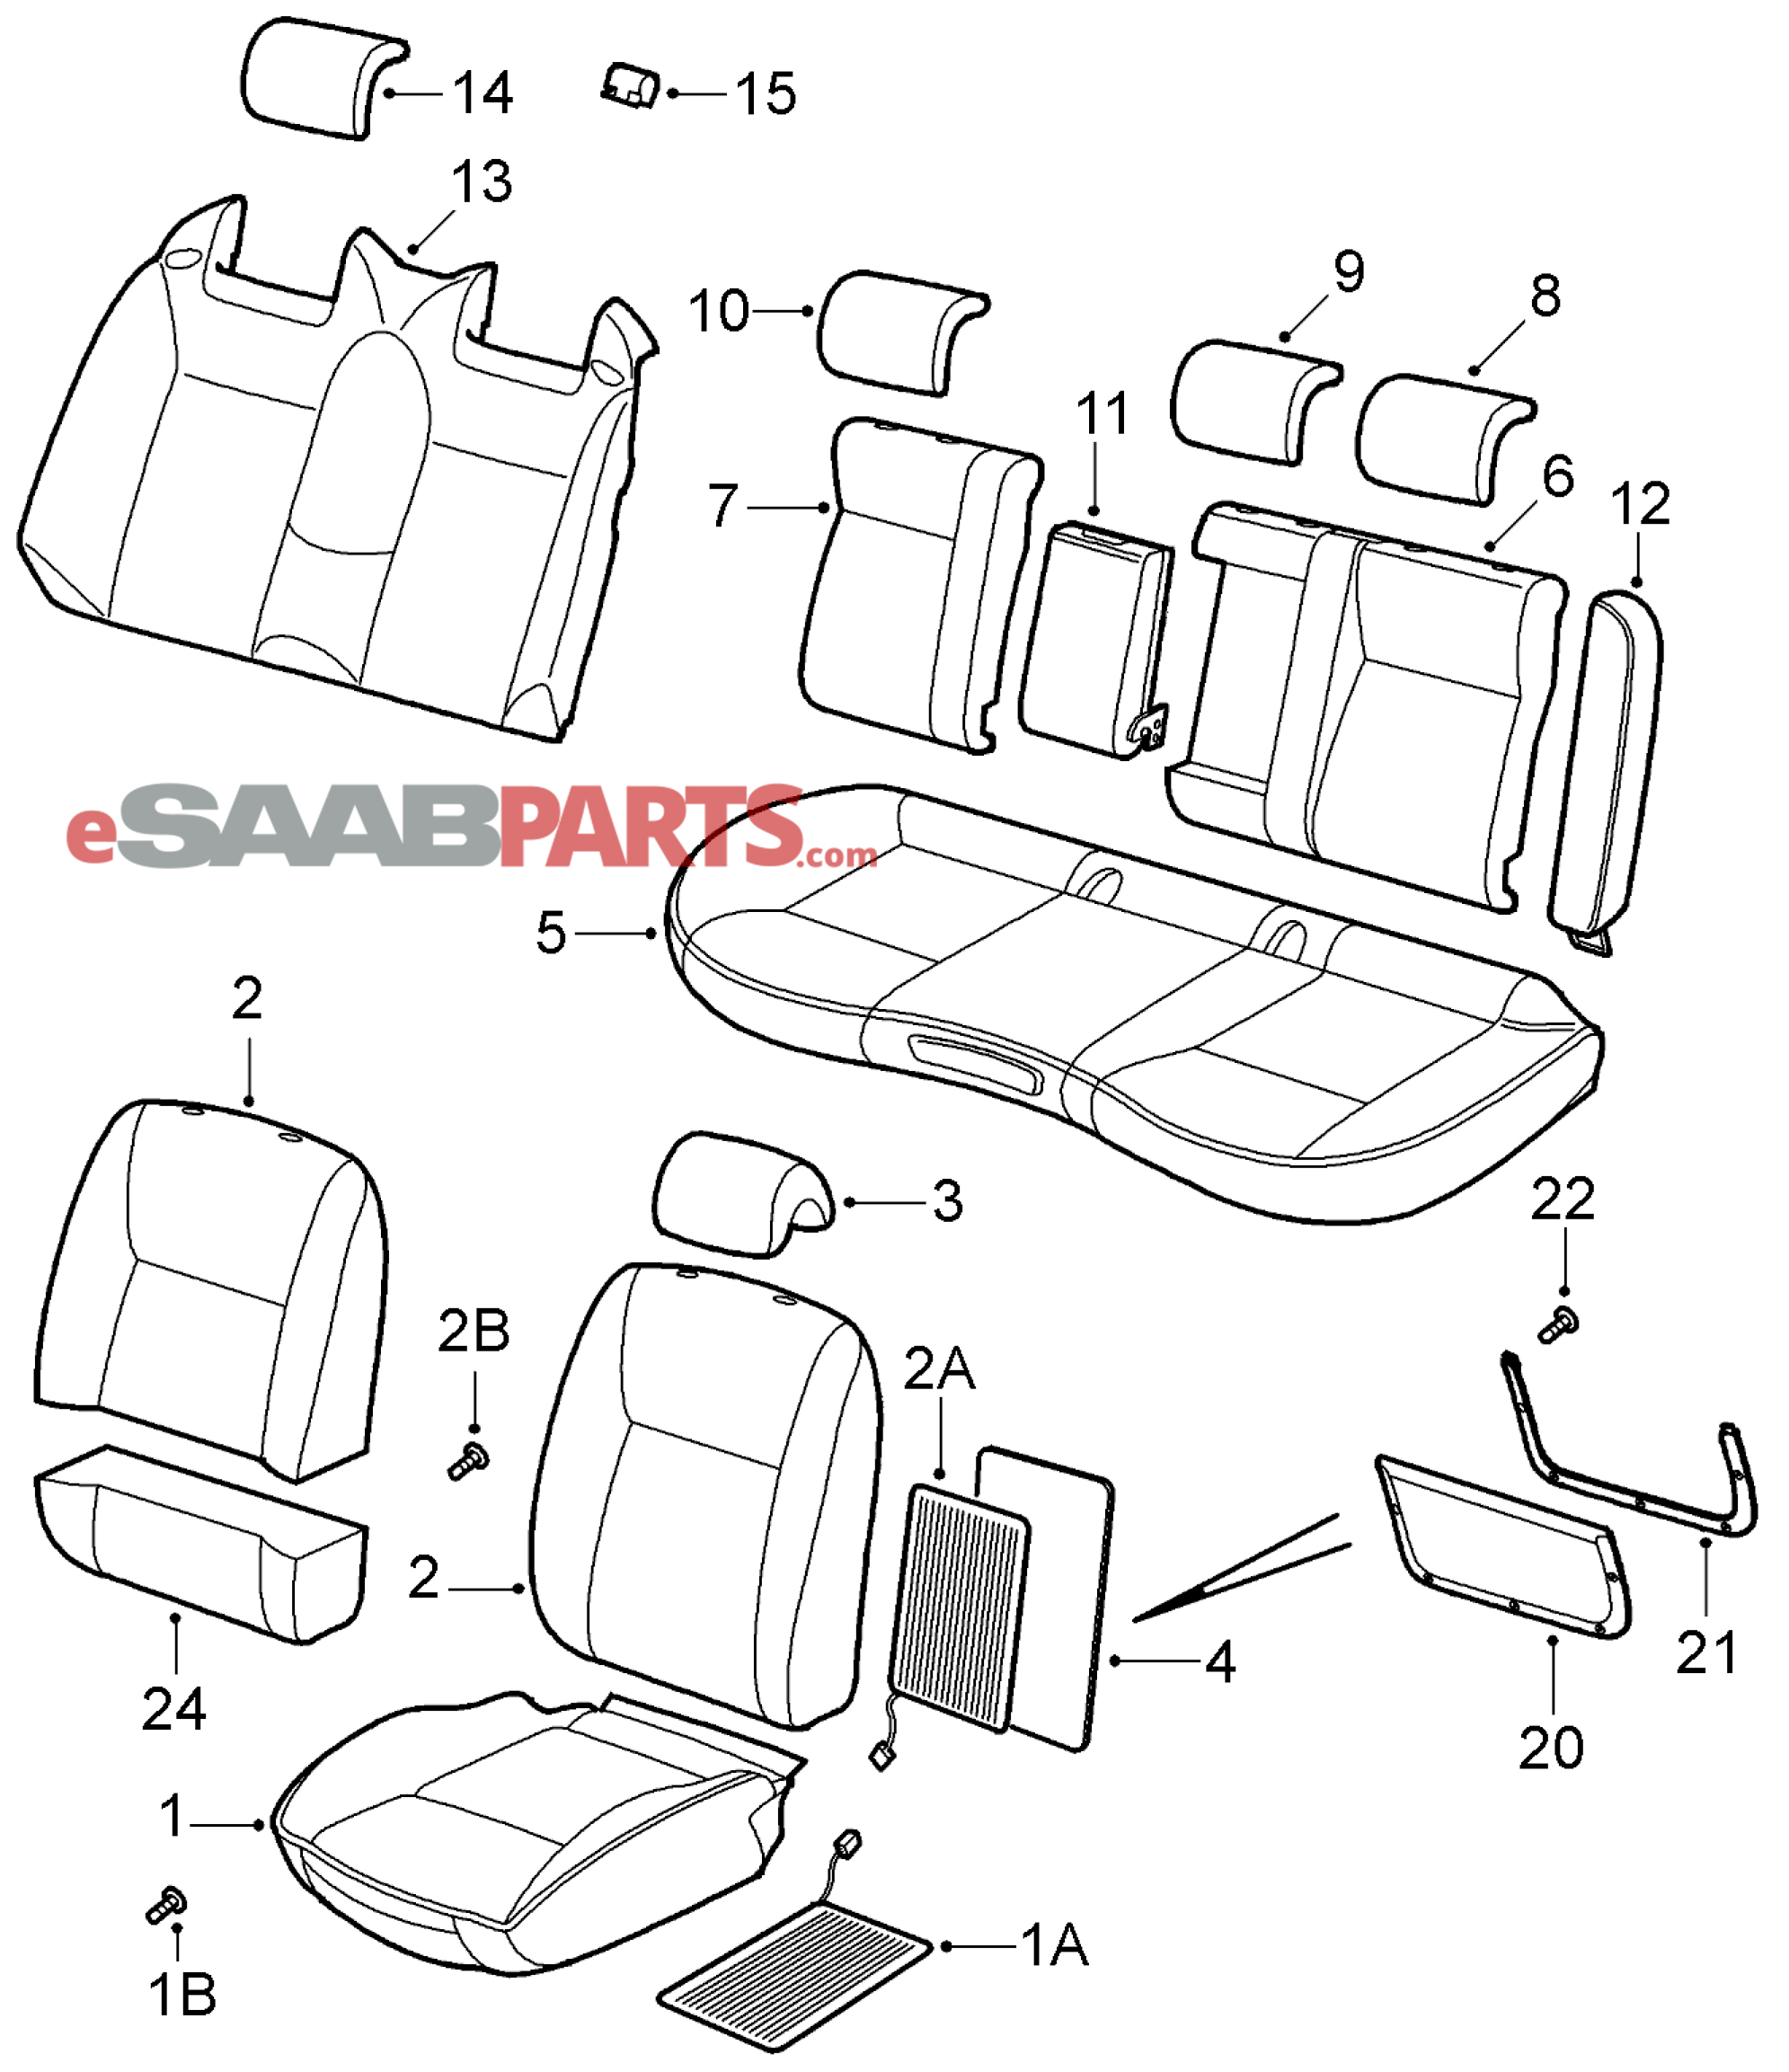 Saab 9 3 9440 Car Body Internal Parts Seat Viggen Wiring Diagram Covers 2008